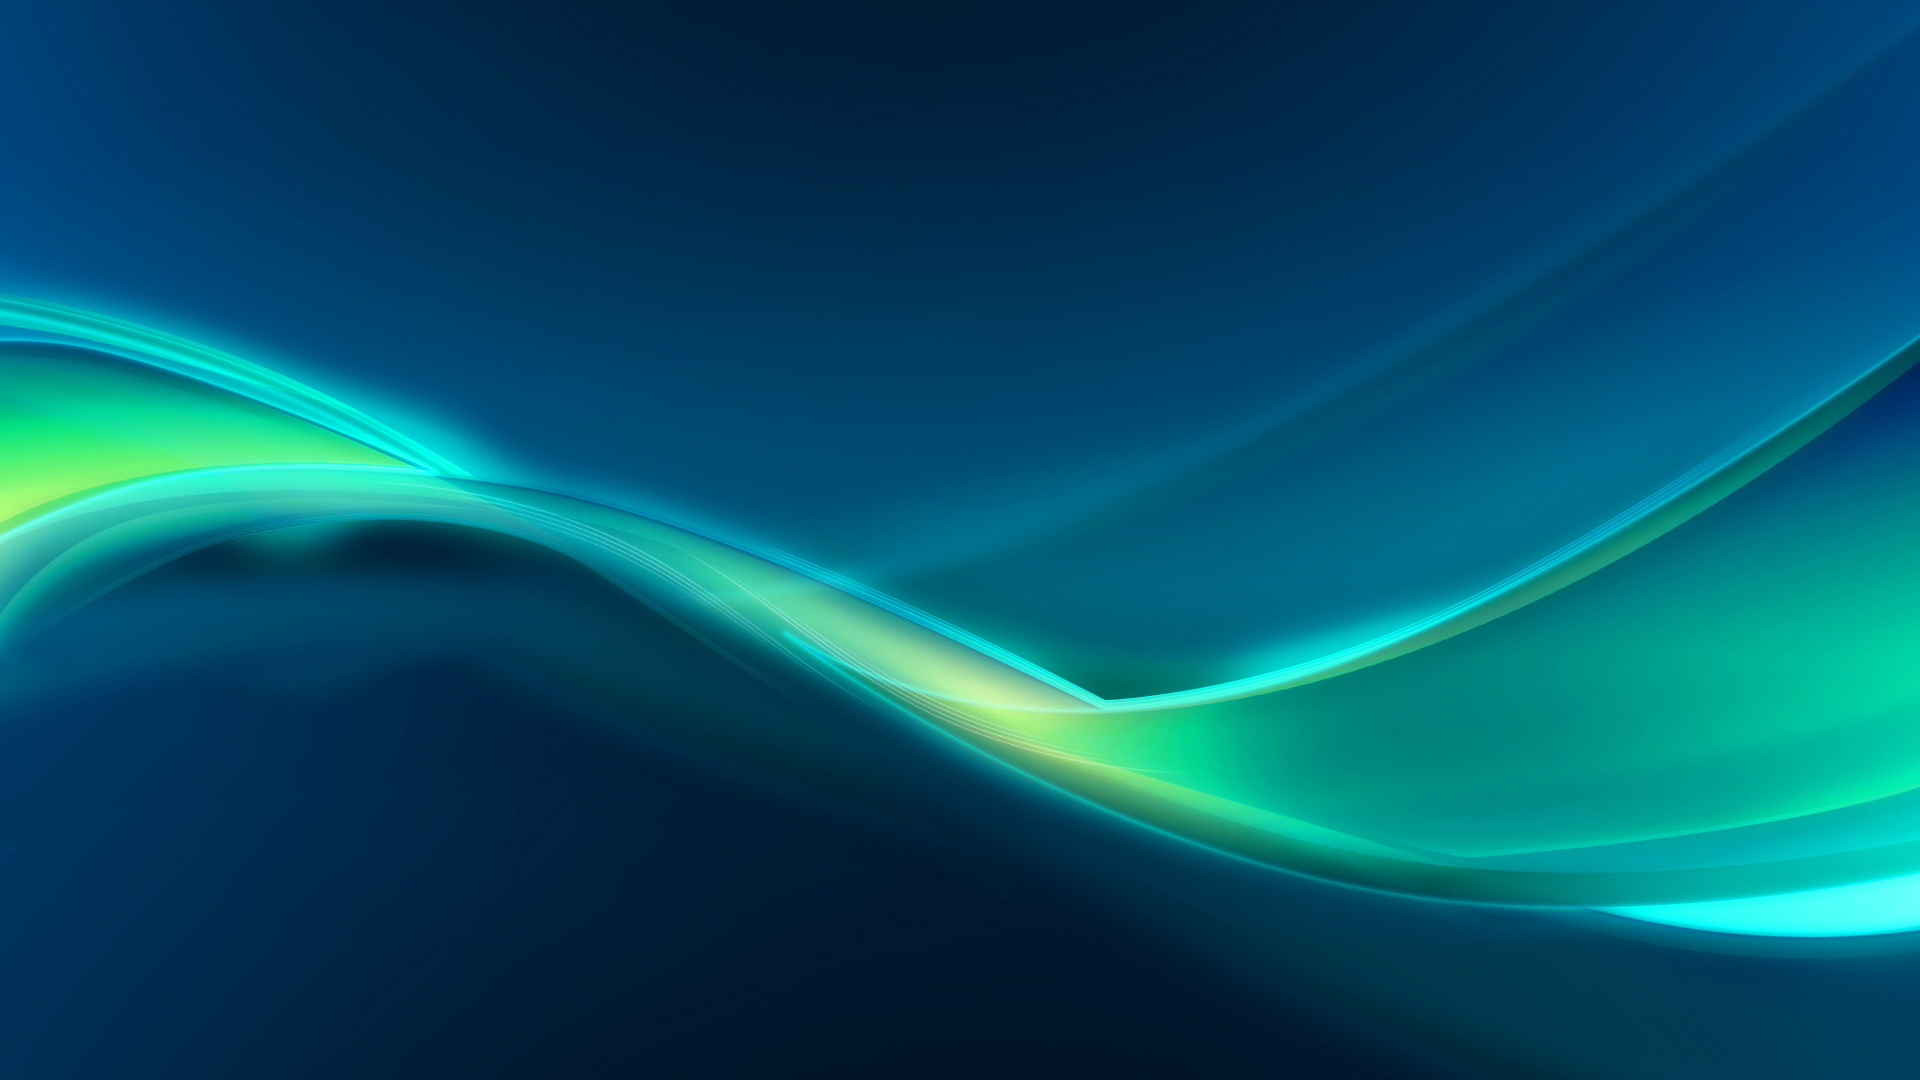 Beautiful Abstract Waves Wallpaper